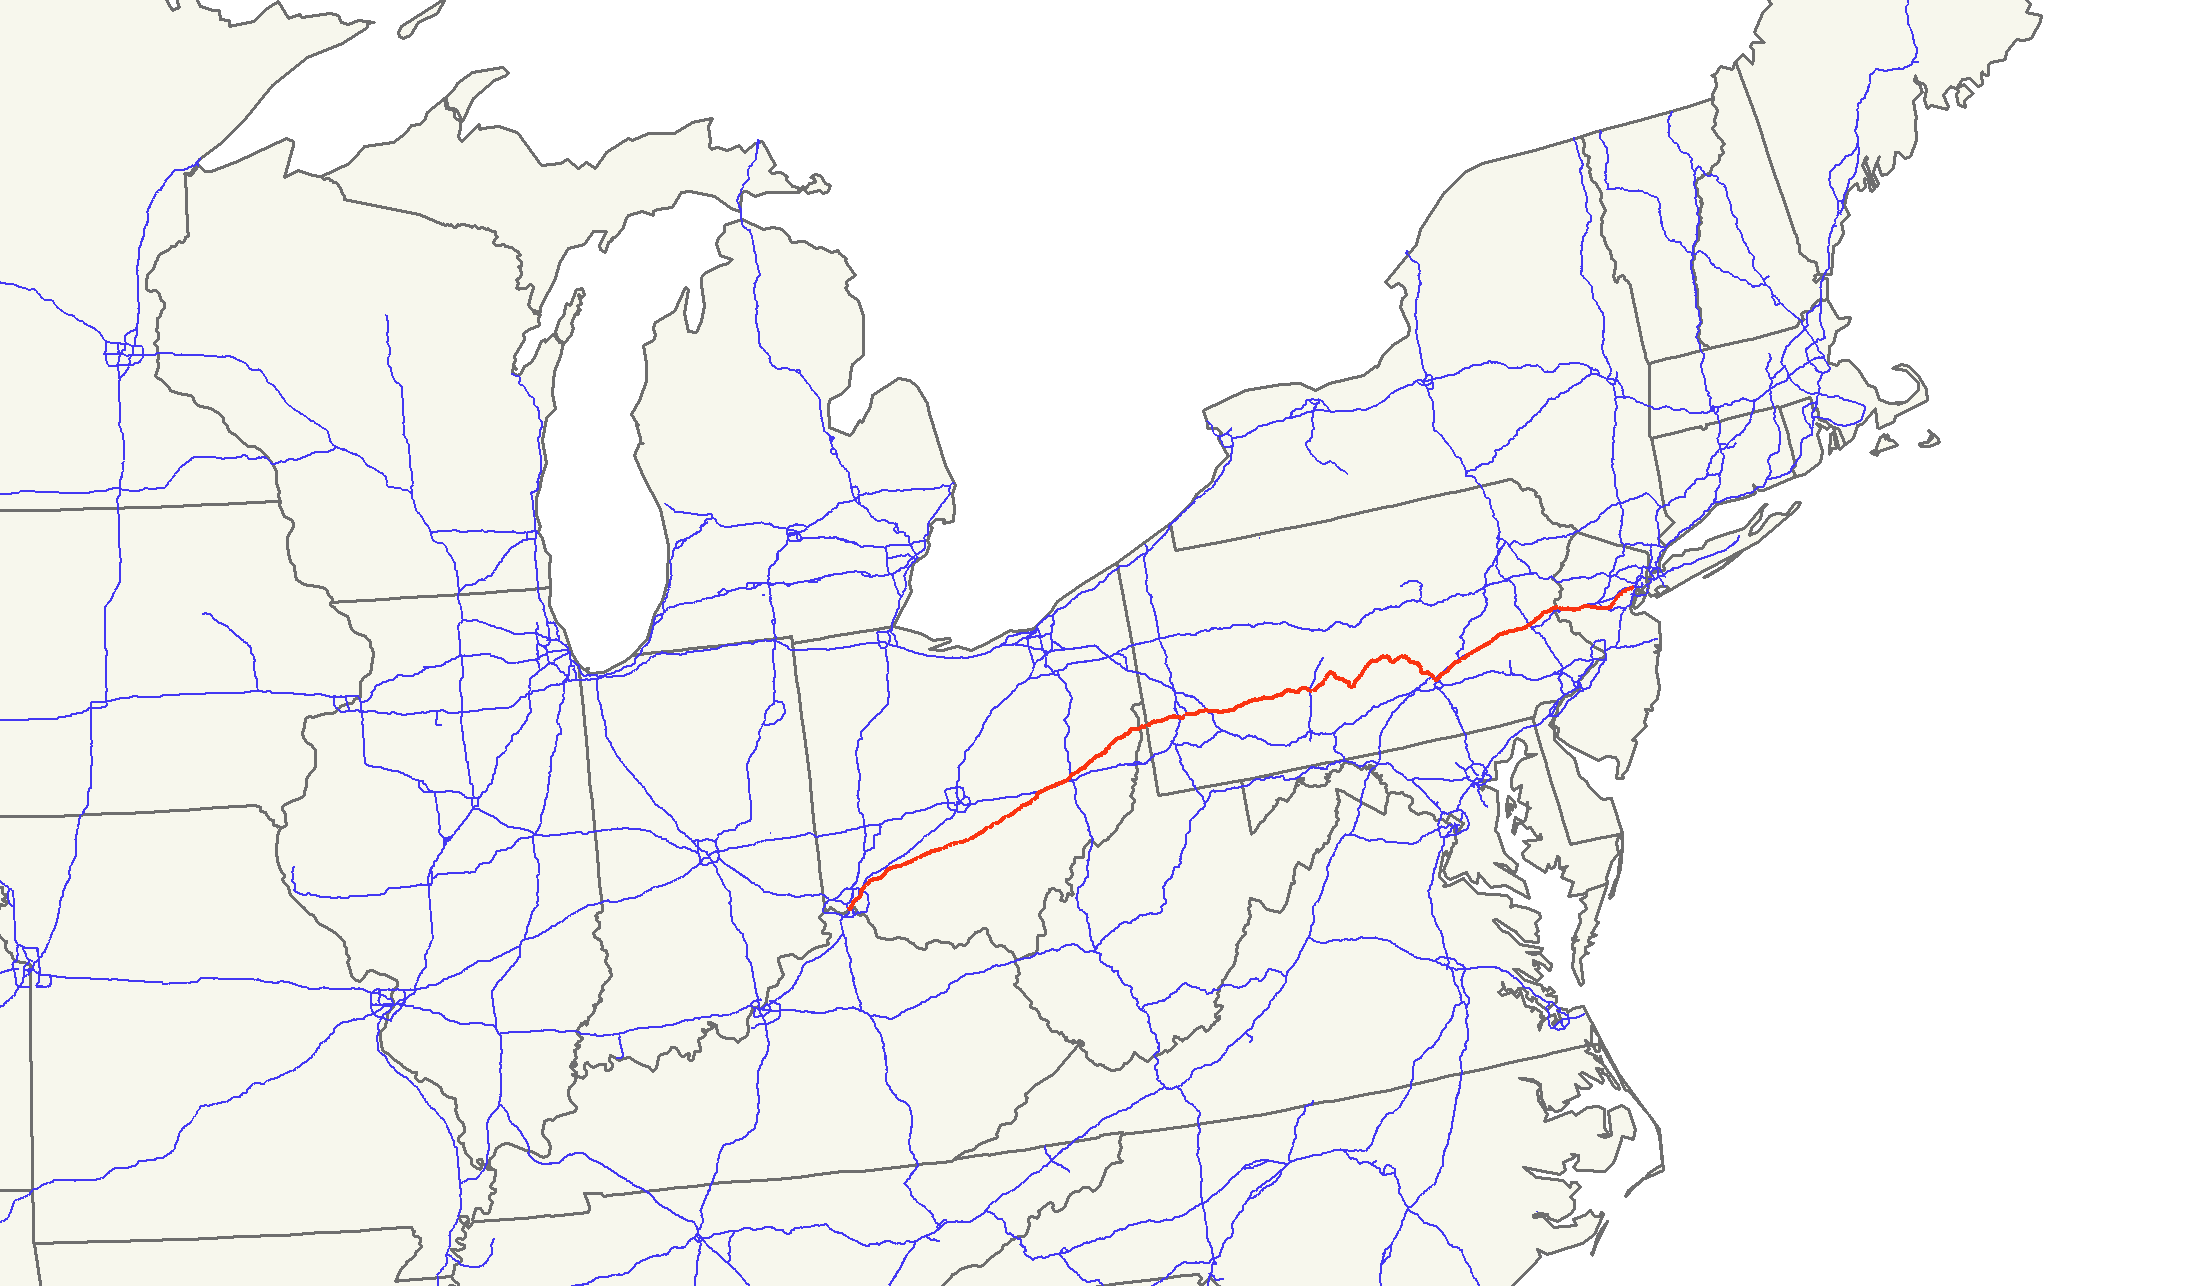 U.S. Route 22 - Wikipedia on route 91 map, route 15 map, route 8 map, route 9 map, route 33 map, route 80 map, route 20 map, freeway 22 map, route 5 map, route 44 map, route 11 map, route 1 map, route 27 map, route 6 map, route 23 map, route 12 map, n's castle map, route 18 map, route 2 map, route 17 map,